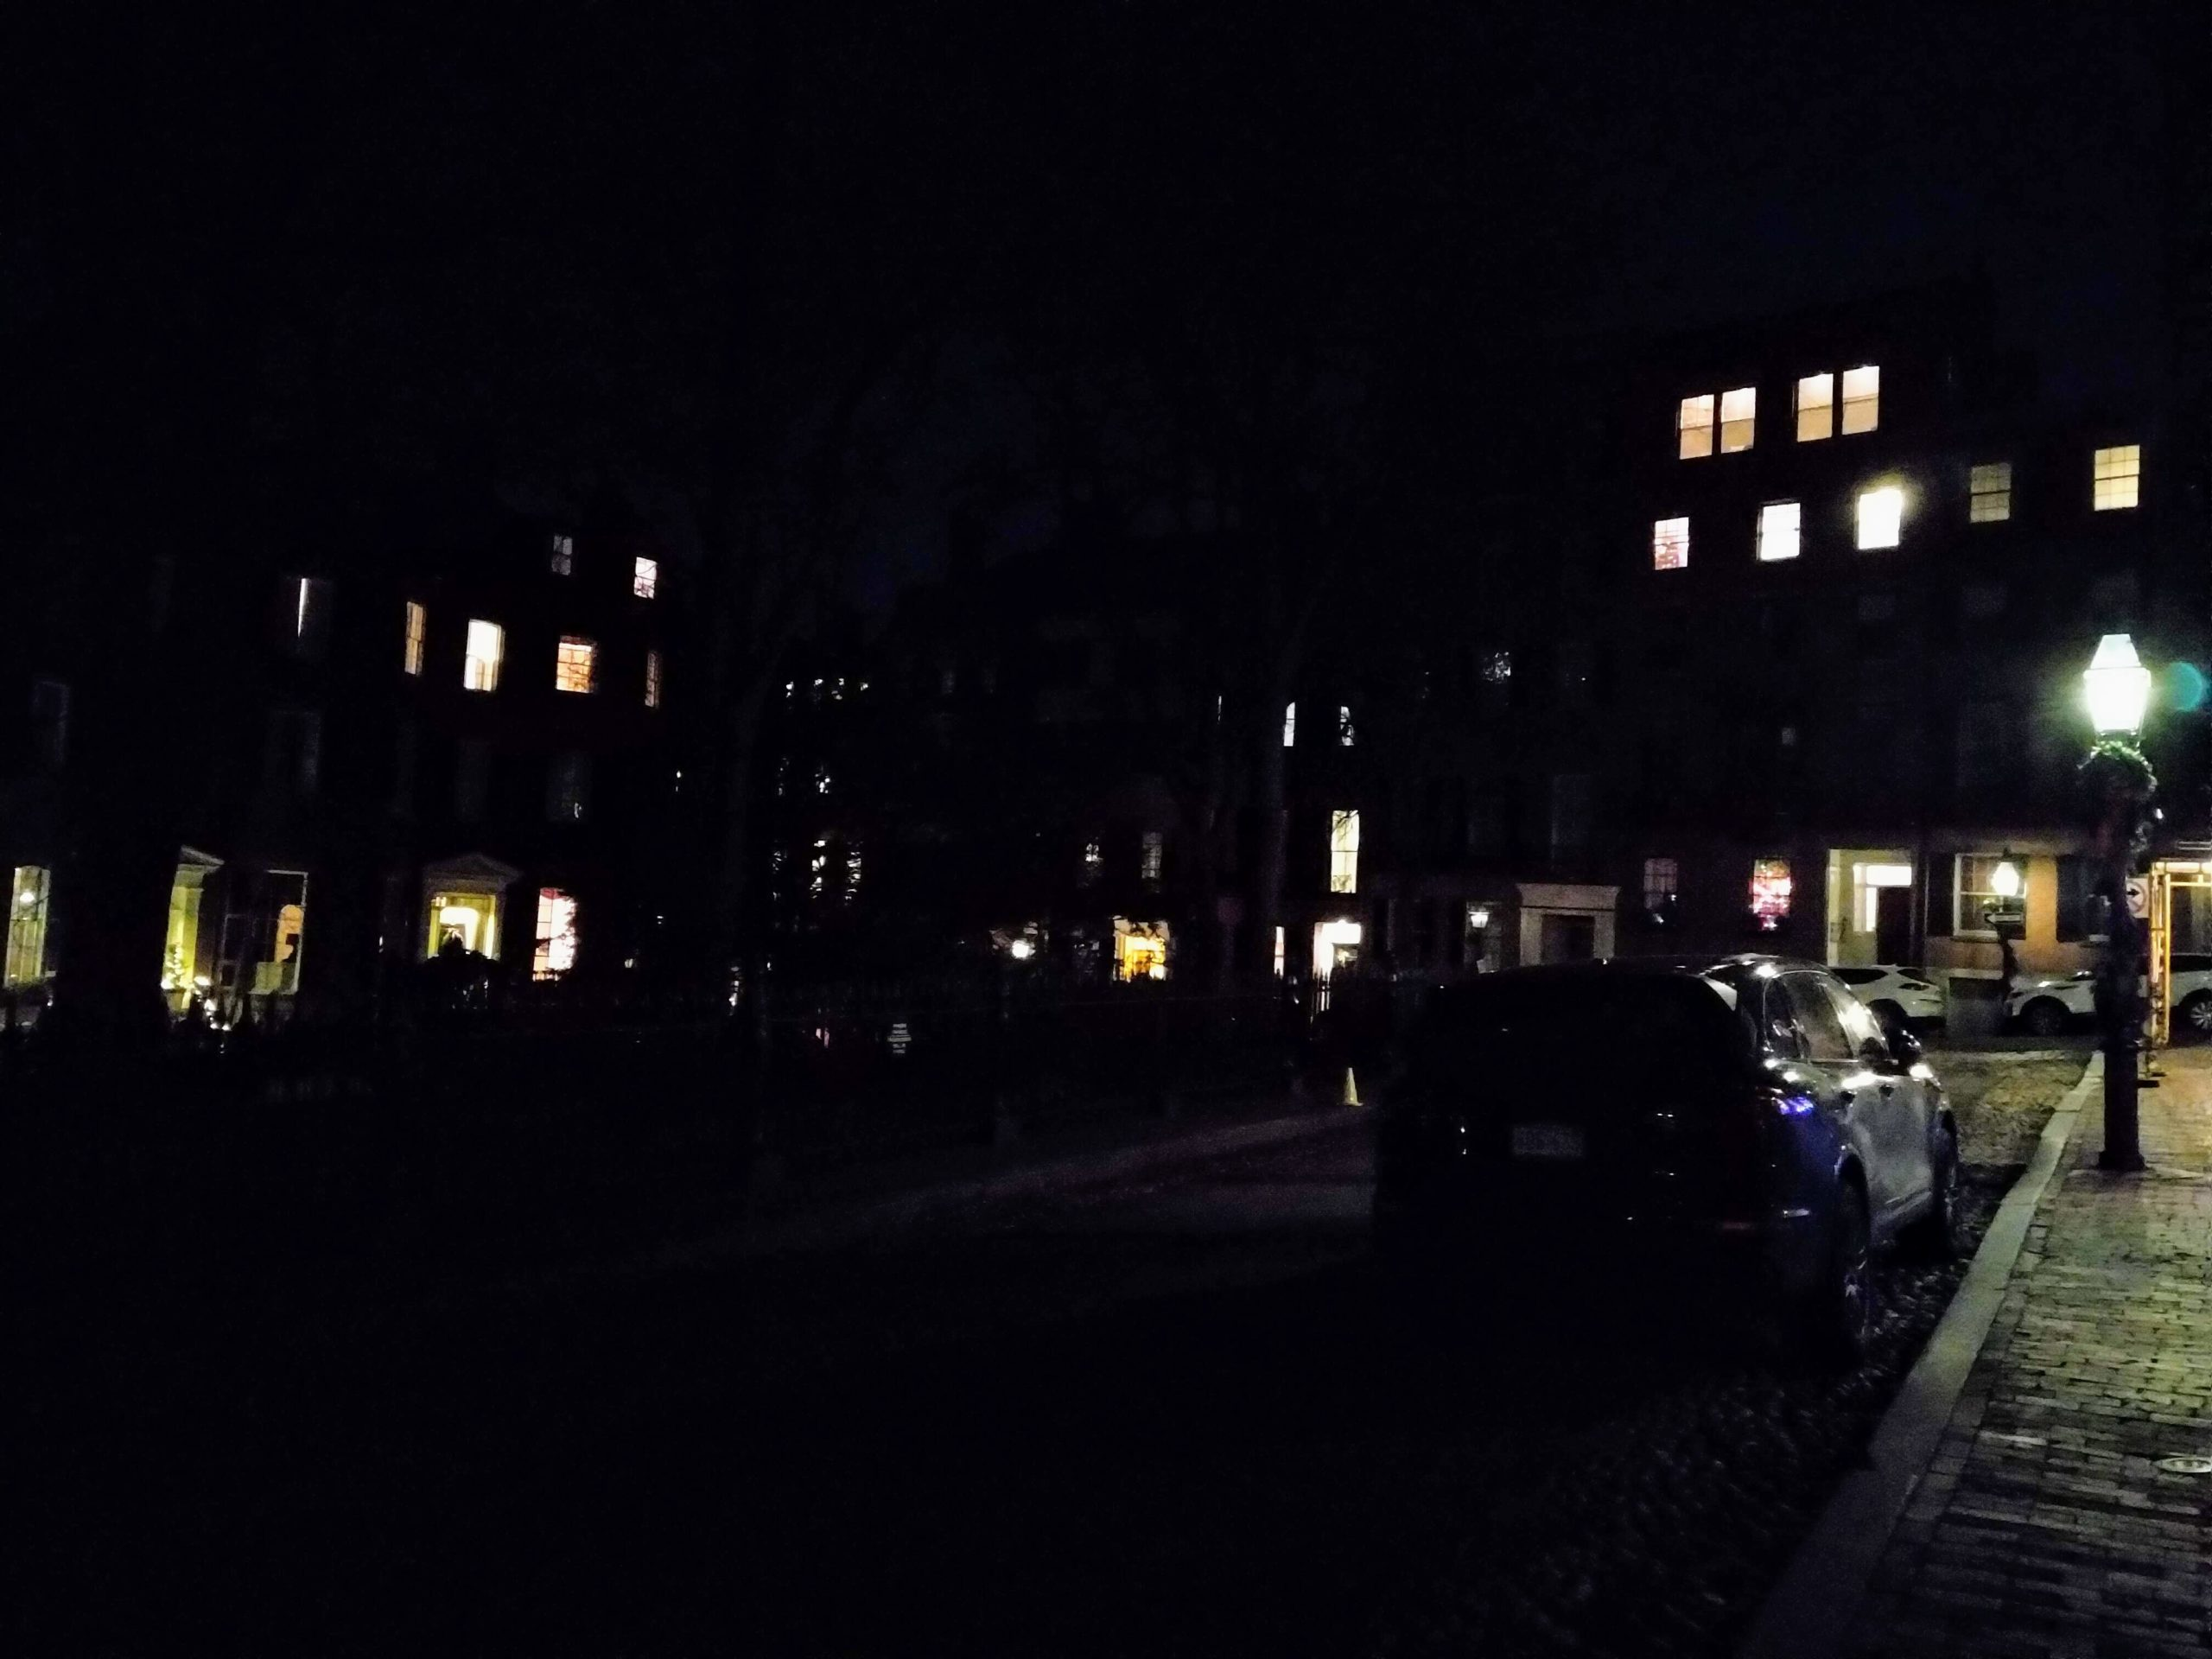 a dimly lit picture of the neighborhood. visible are windows in the distance, a car, and a lamppost.